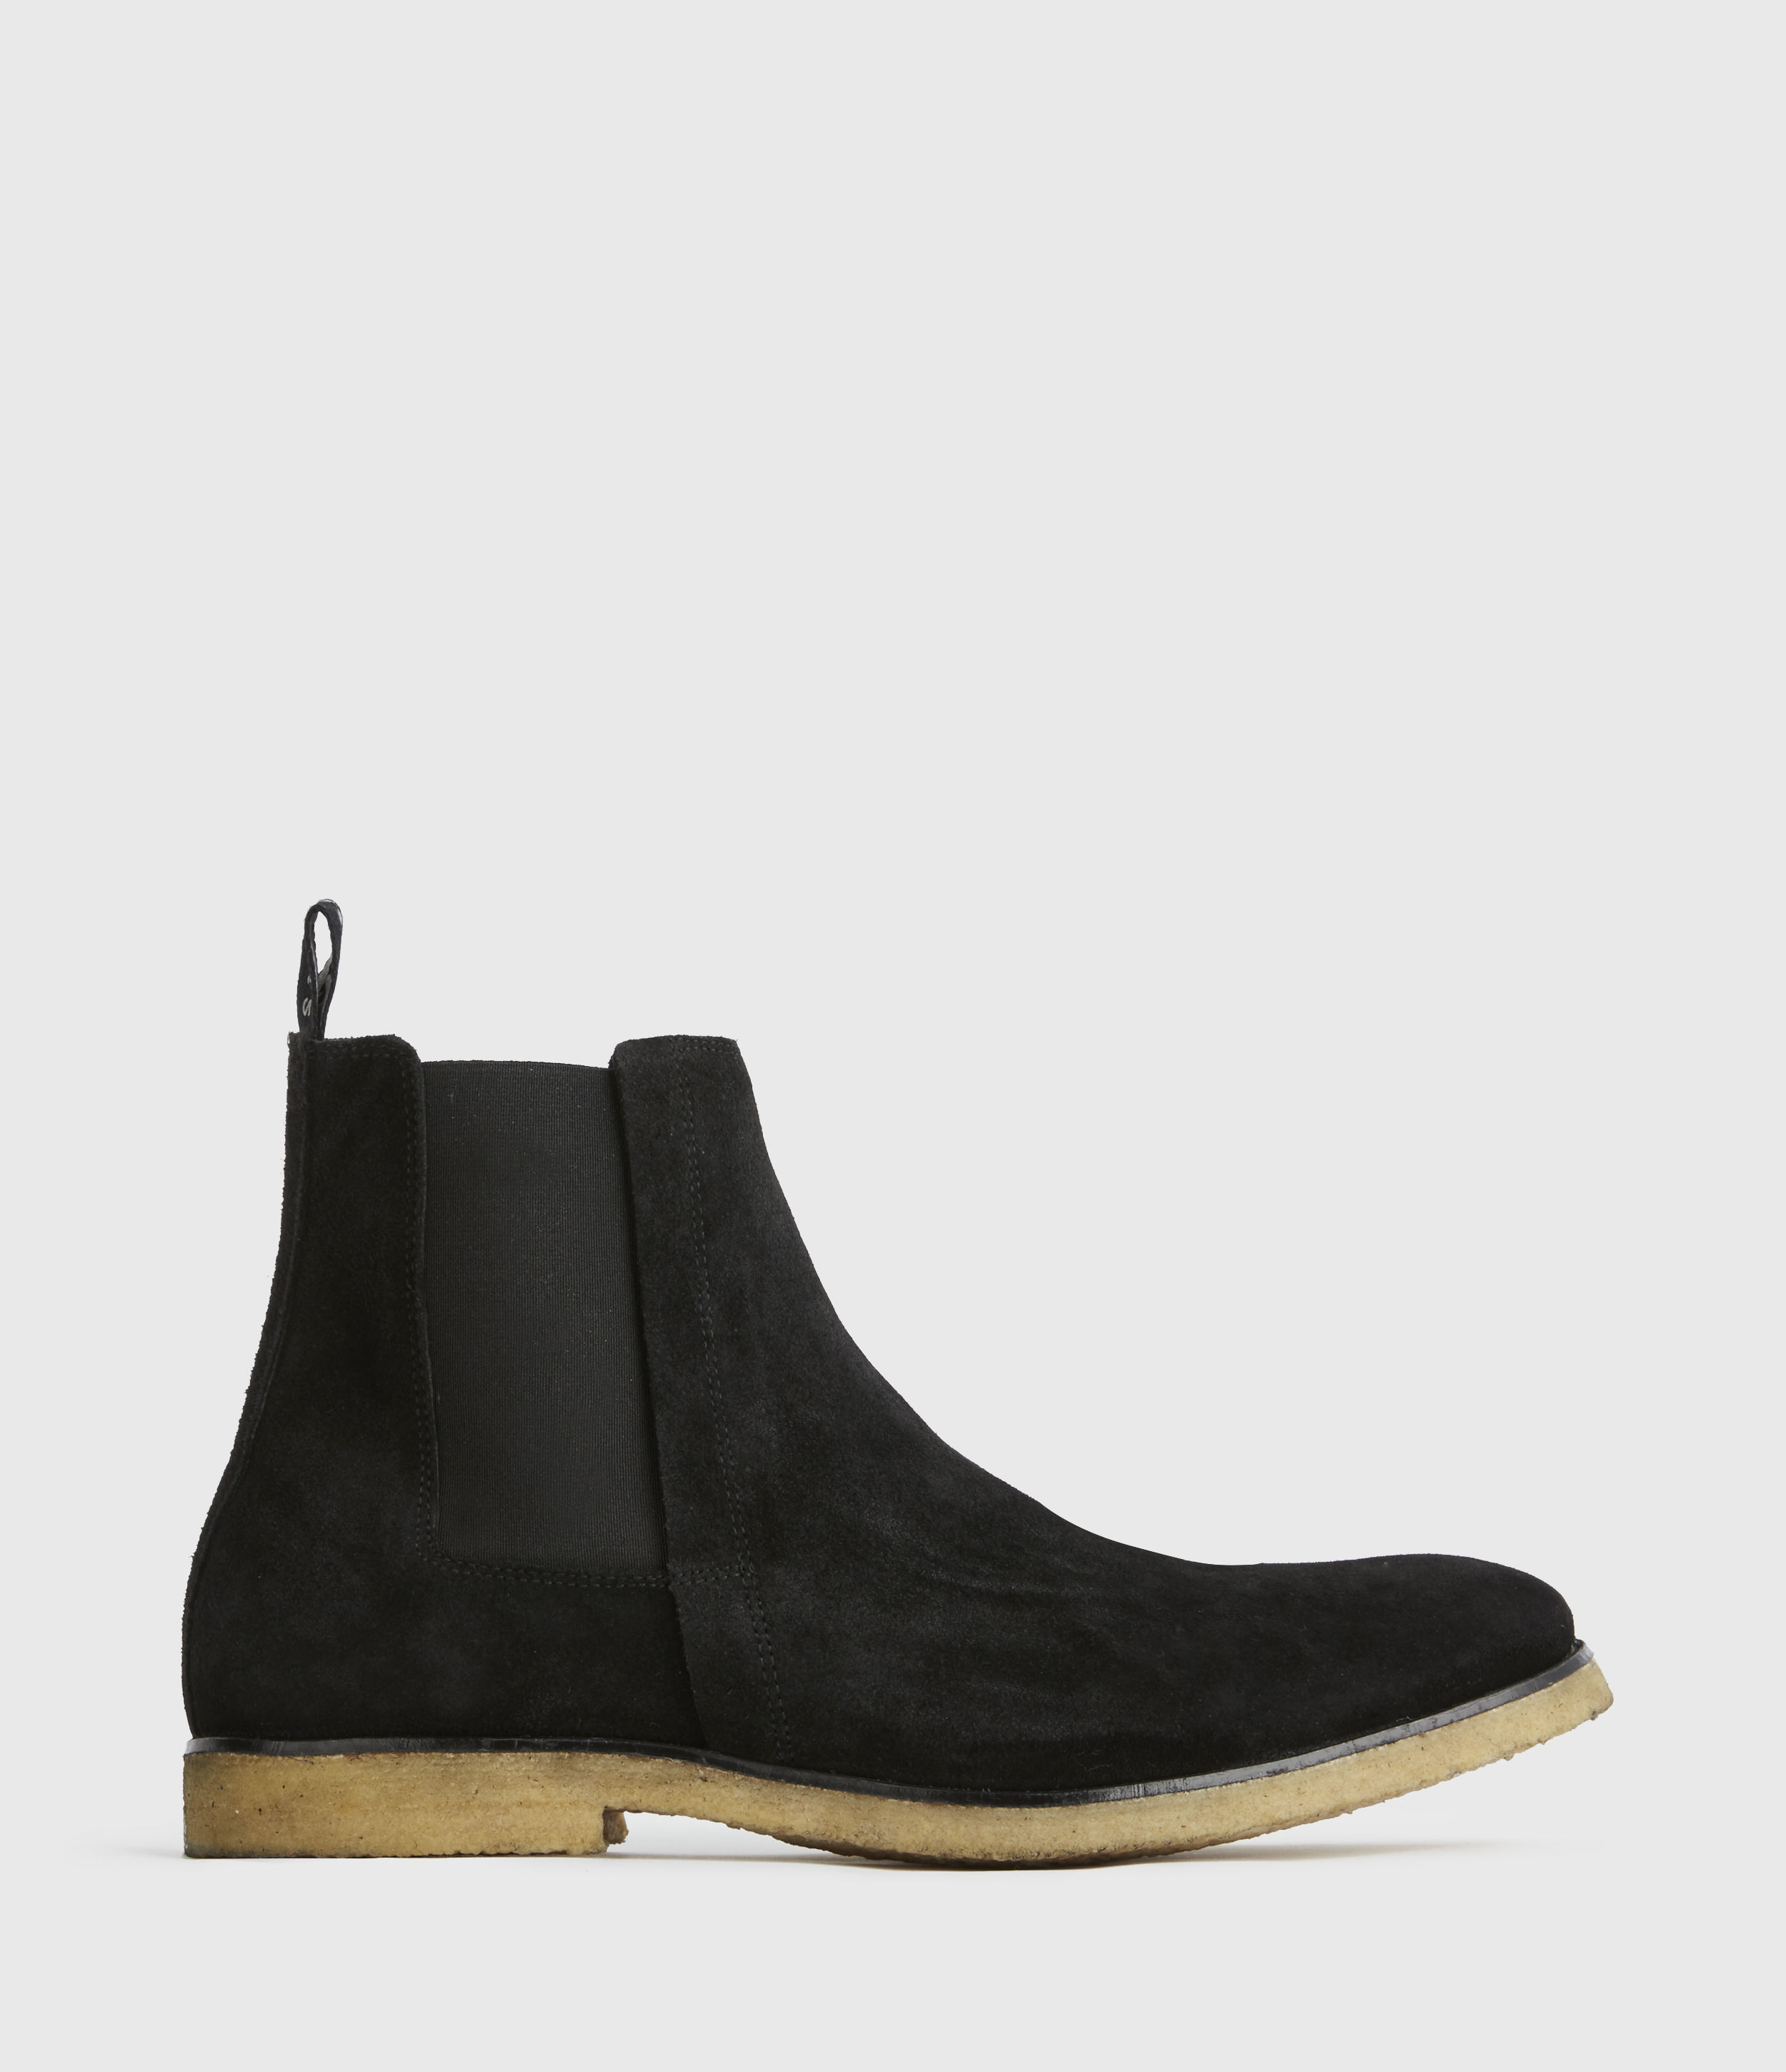 AllSaints Mens Rhett Suede Boots, Black, Size: UK 10/US 11/EU 44